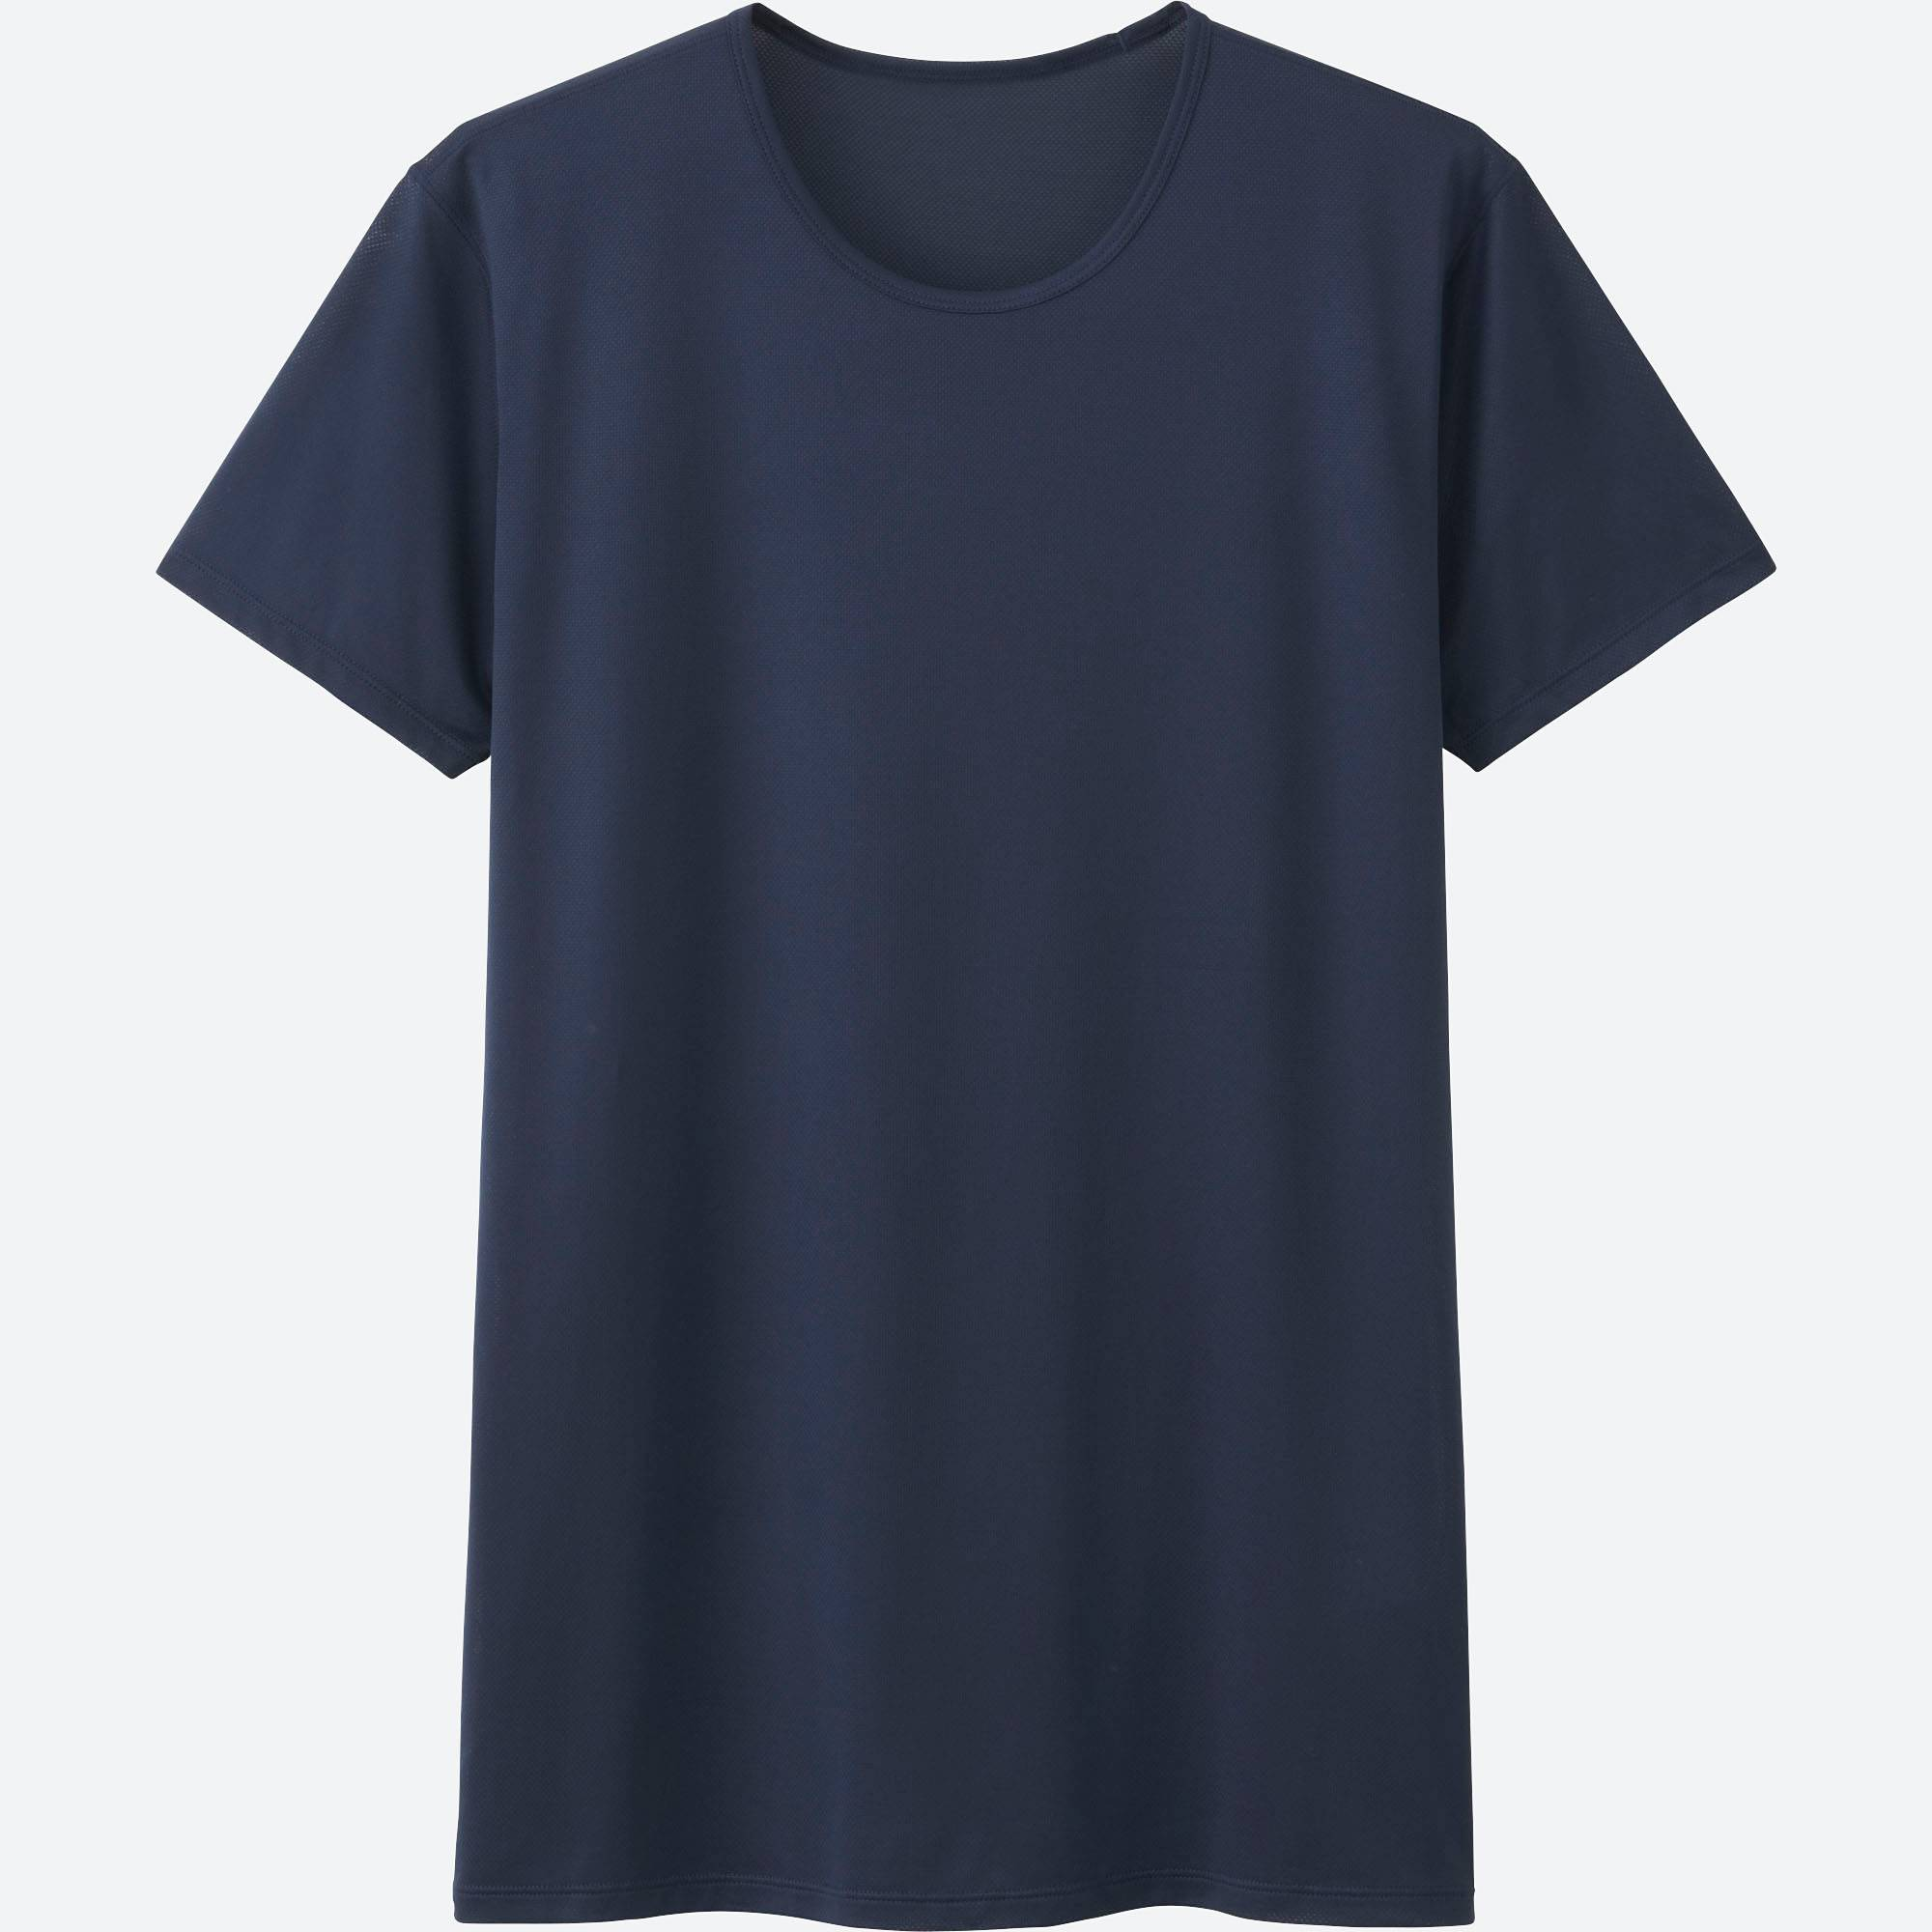 Black t shirt under button down - Men Airism Mesh Crewneck T Shirt Short Sleeve Navy Medium